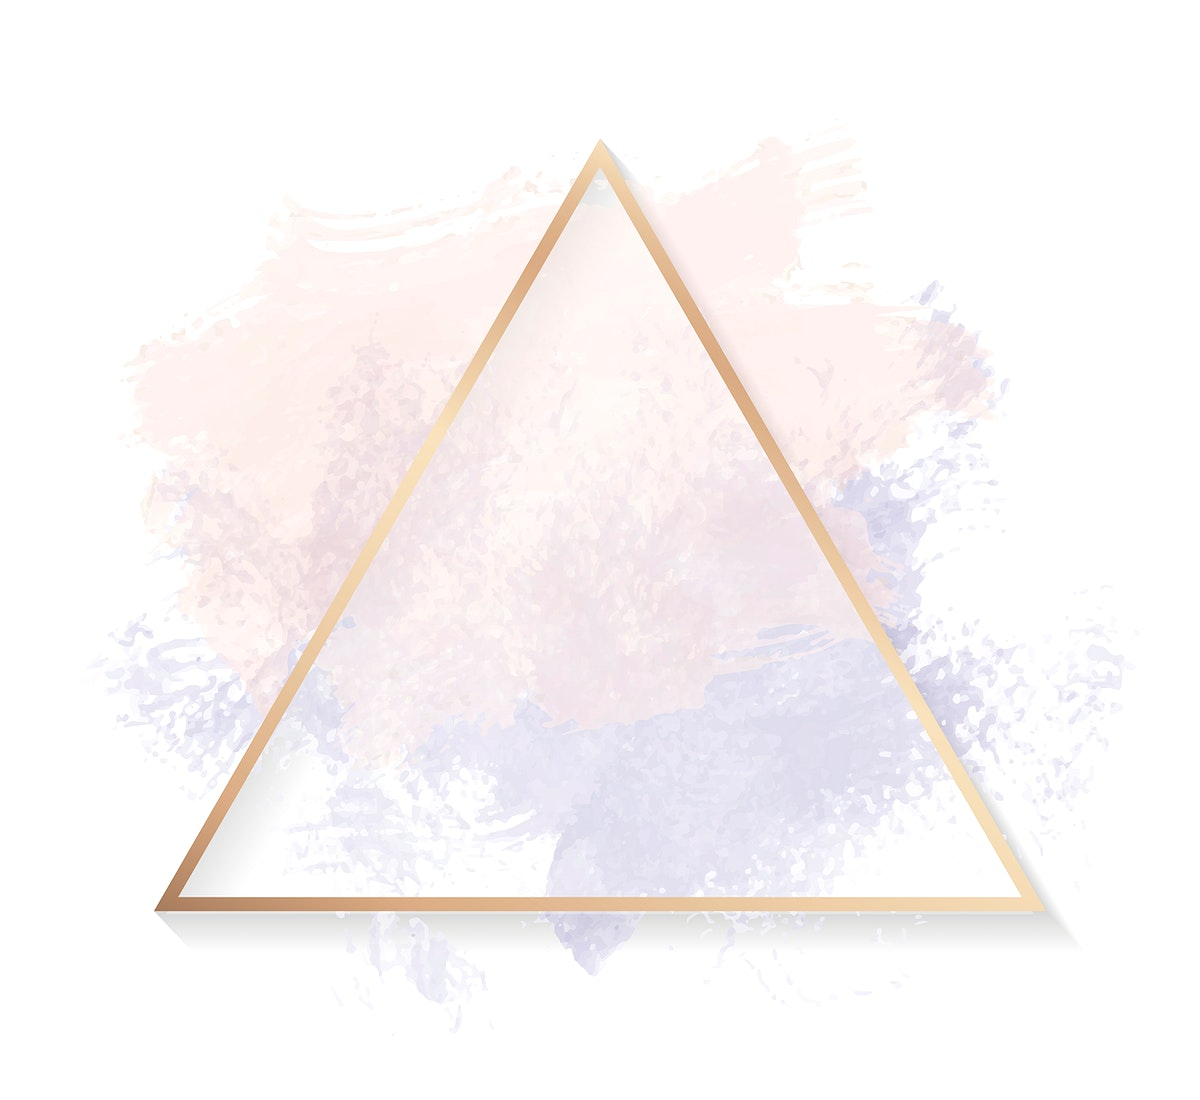 Gold triangle frame on a pastel pink and purple background